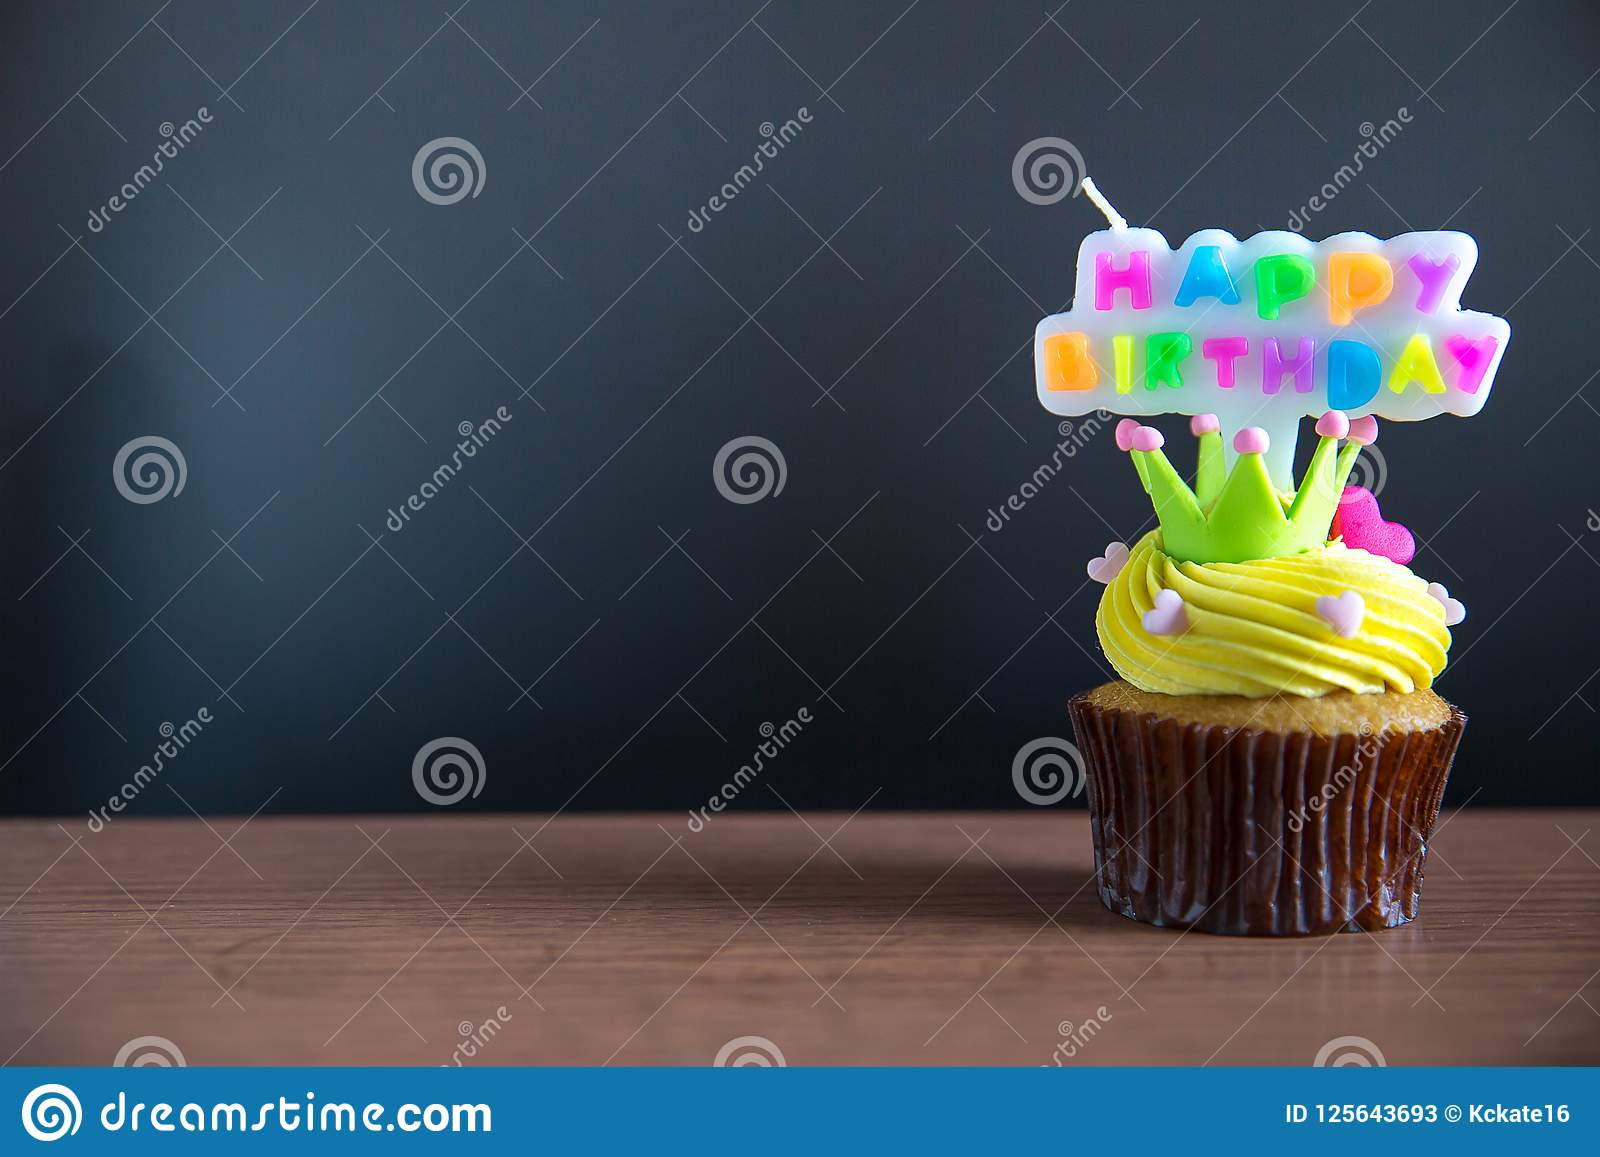 Cup cake and happy birthday text candle on cupcake ..Birthday cupcake with a happy brithday text candle.